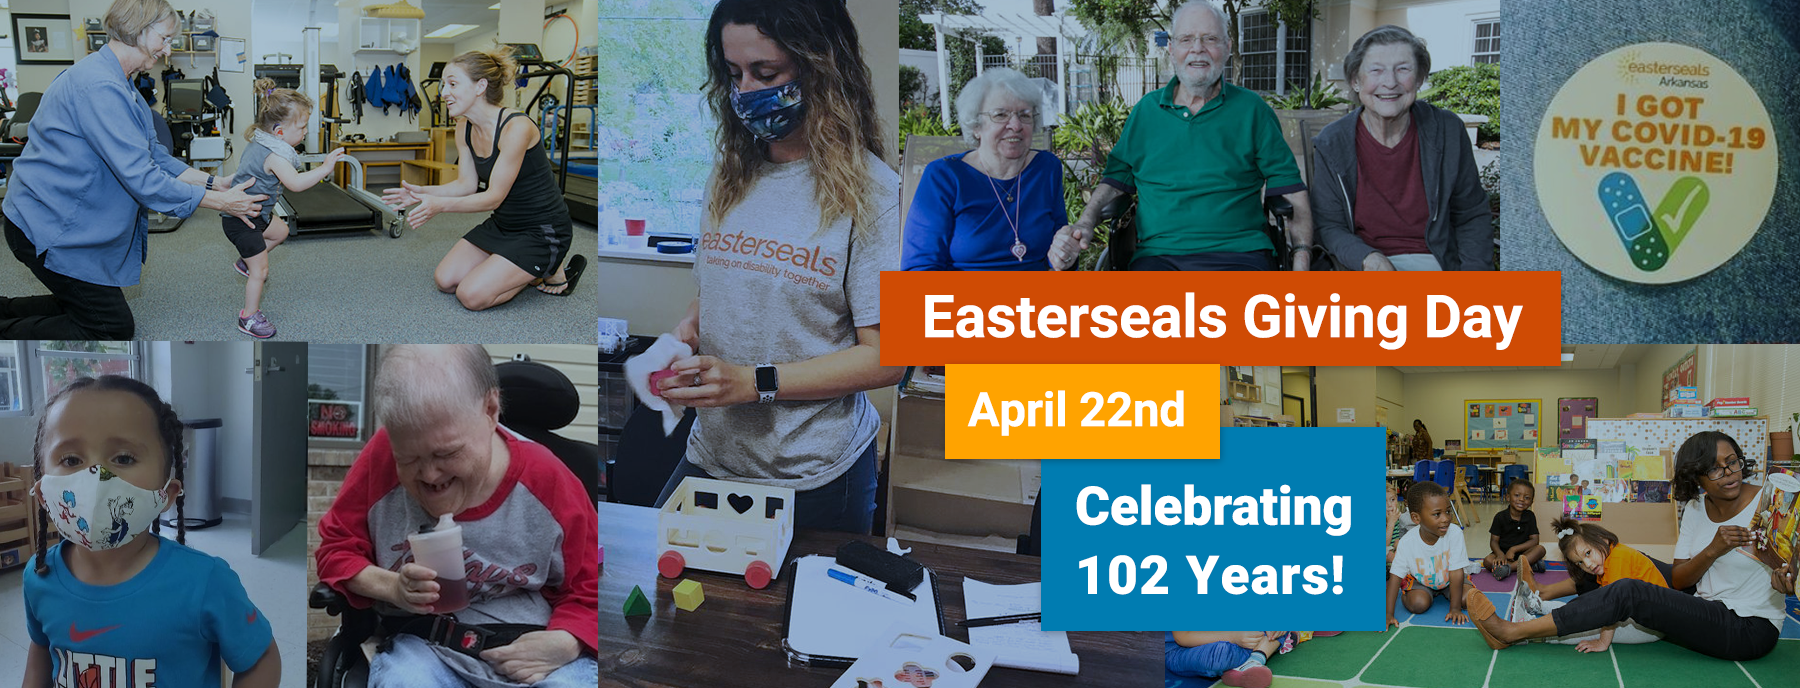 Easterseals Giving Day 2021